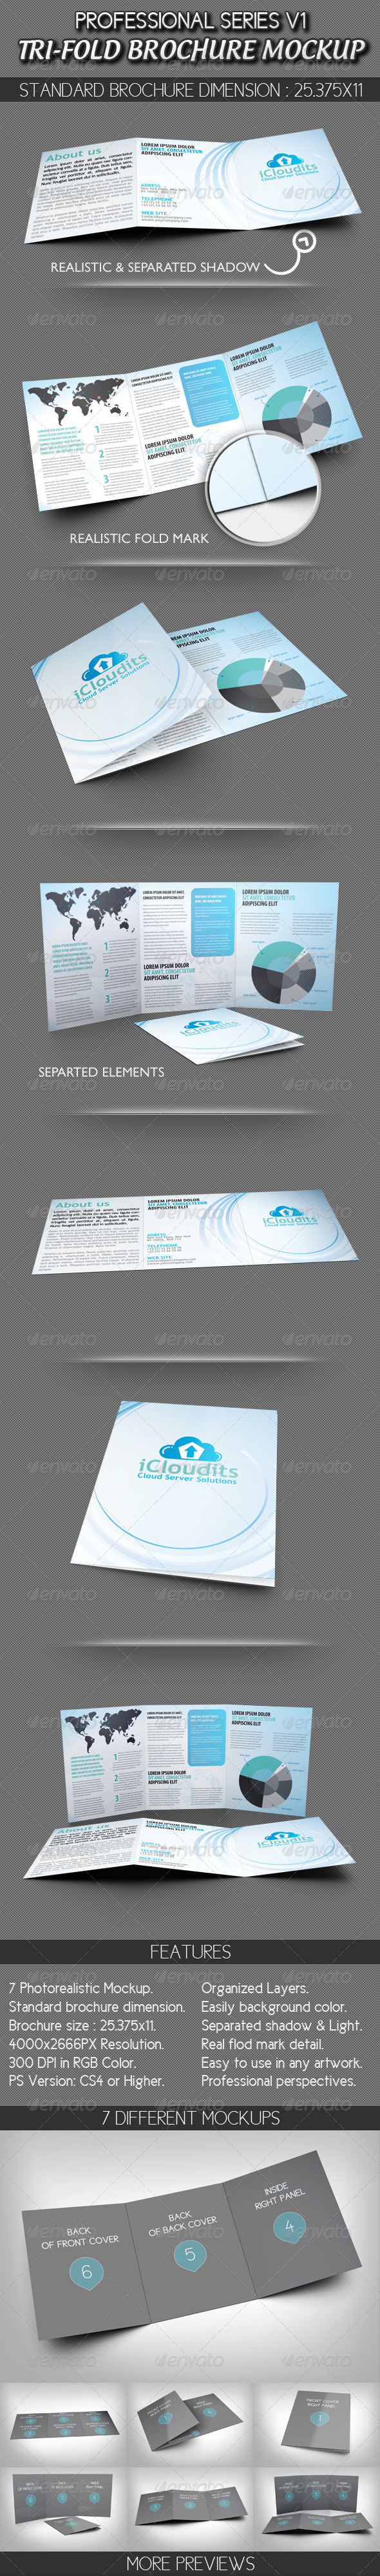 Professional Tri-fold Brochure Mockup V1 - Brochures Print